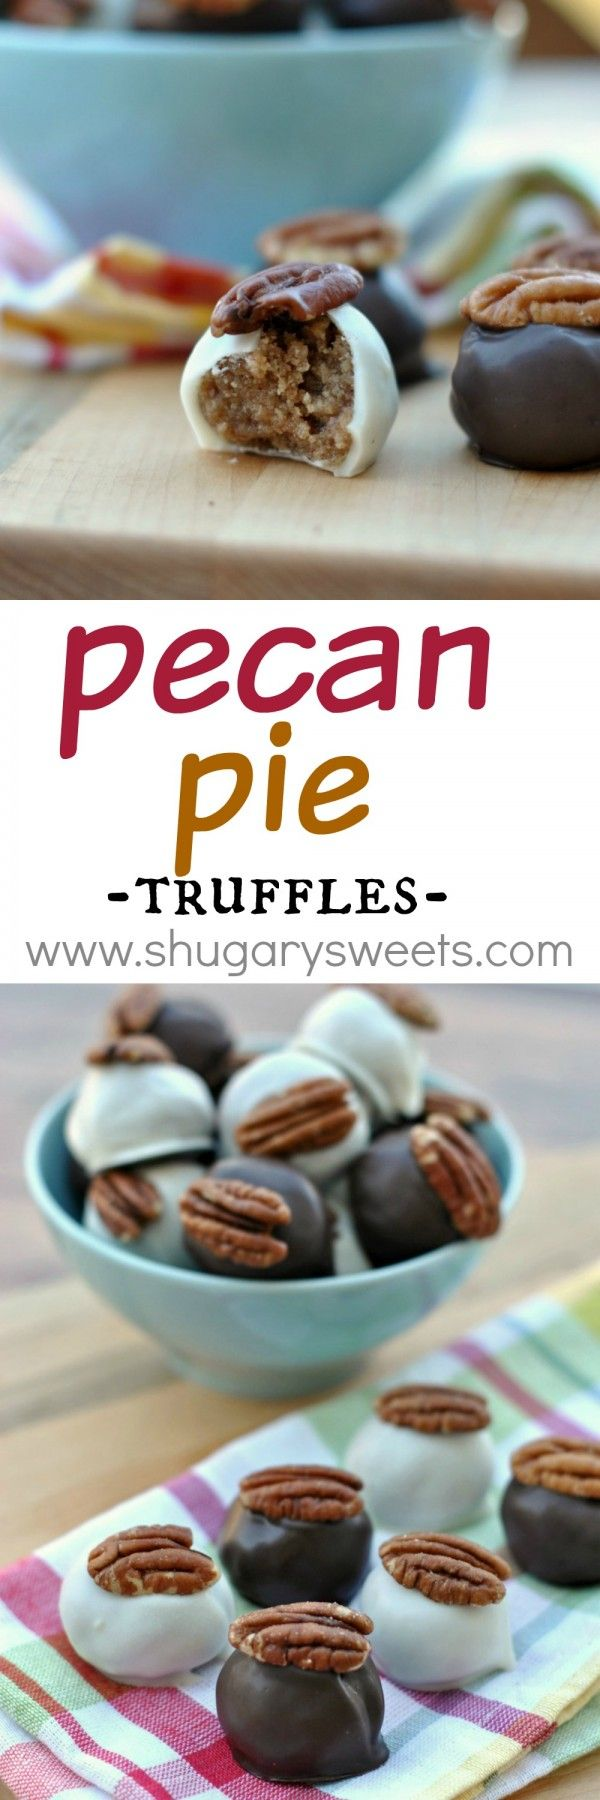 Pecan Pie Truffles: delicious bites of pecan pie in a chocolate truffle coating!. Please also visit www.JustForYouPropheticArt.com for colorful-inspirational-Prophetic-Art and stories. Thank you so much! Blessings!